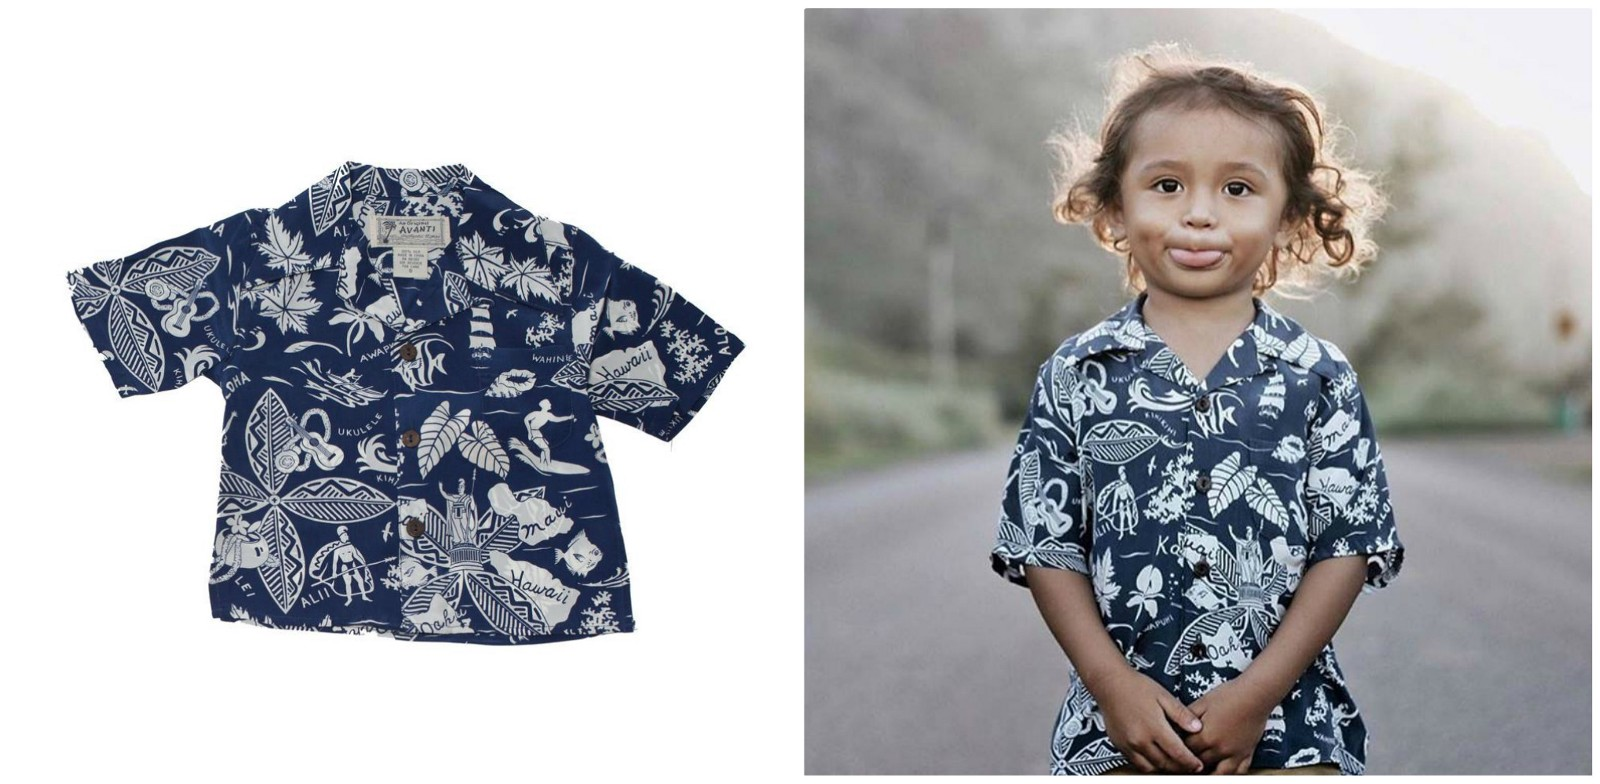 1d46ff806 Like its name, wearing the same would give your kid that sophisticated  kingly feel. Not so bold and bright, the beauty of this Aloha shirt lies in  its ...